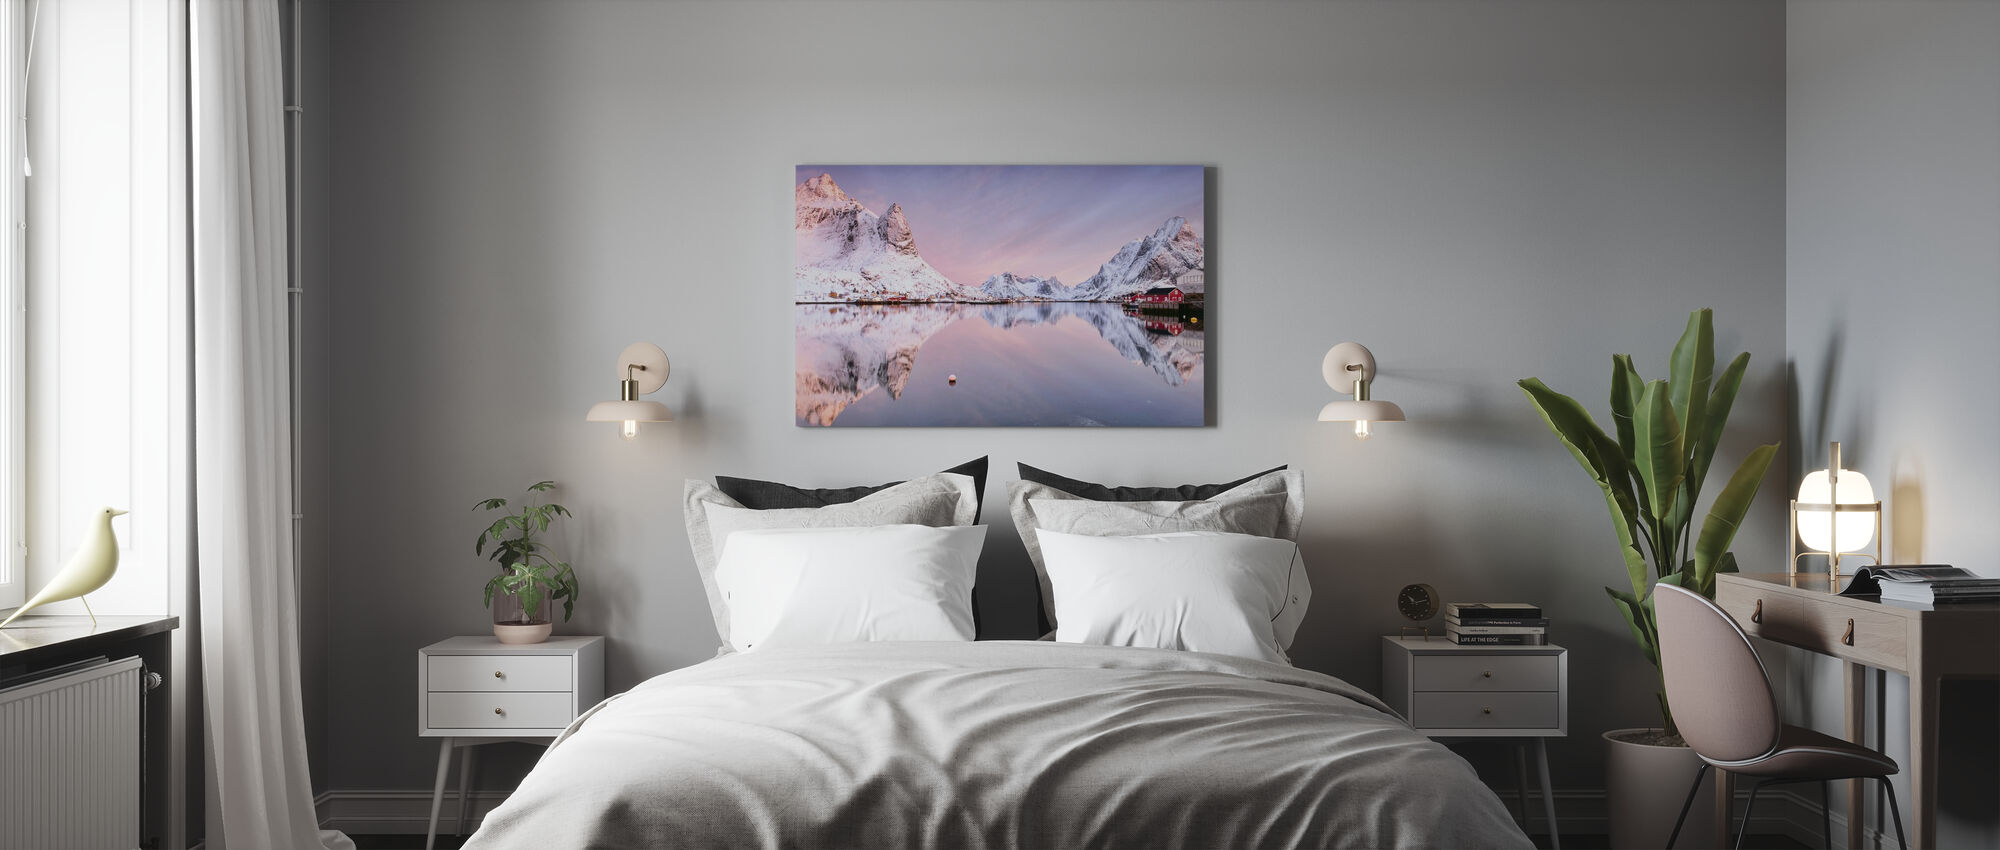 Sunrise at the Fjord - Canvas print - Bedroom